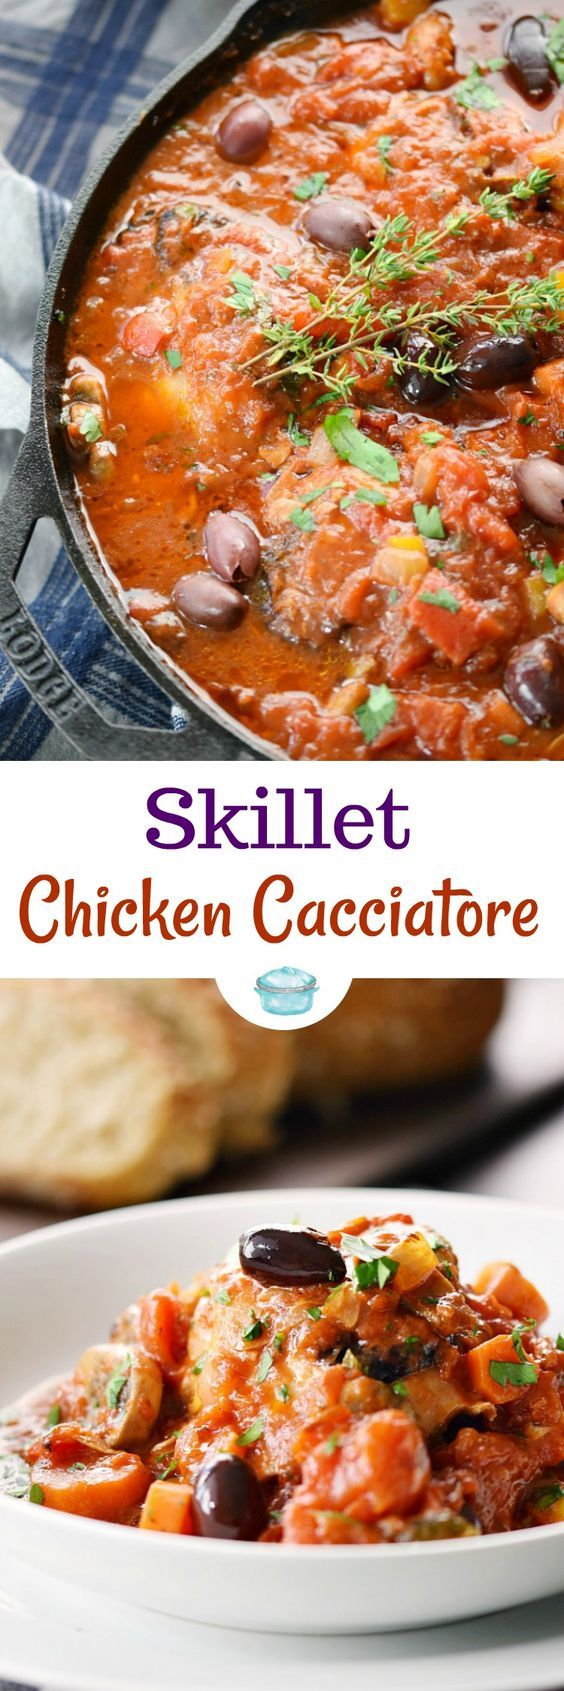 This simple, rustic Skillet Chicken Cacciatore will become a family favorite with it's vibrant flavors and fall off the bone deliciousness! #paleo #whole30 #skilletmeals #chicken #italian via @cookwithcurls